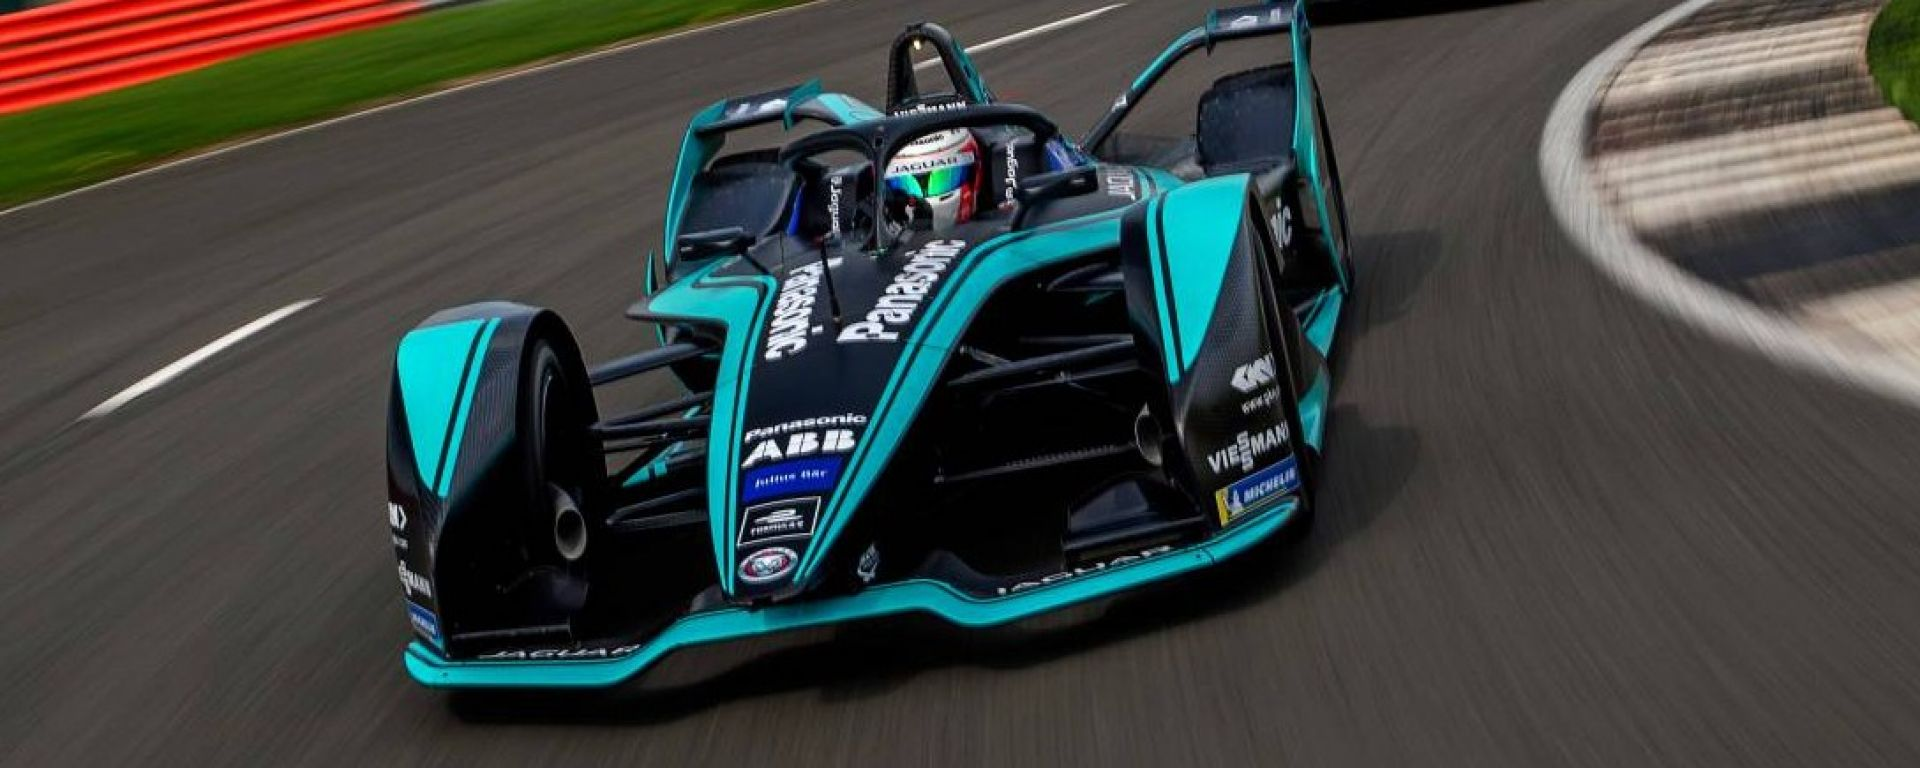 Formula E 2019: Panasonic Jaguar Racing Team